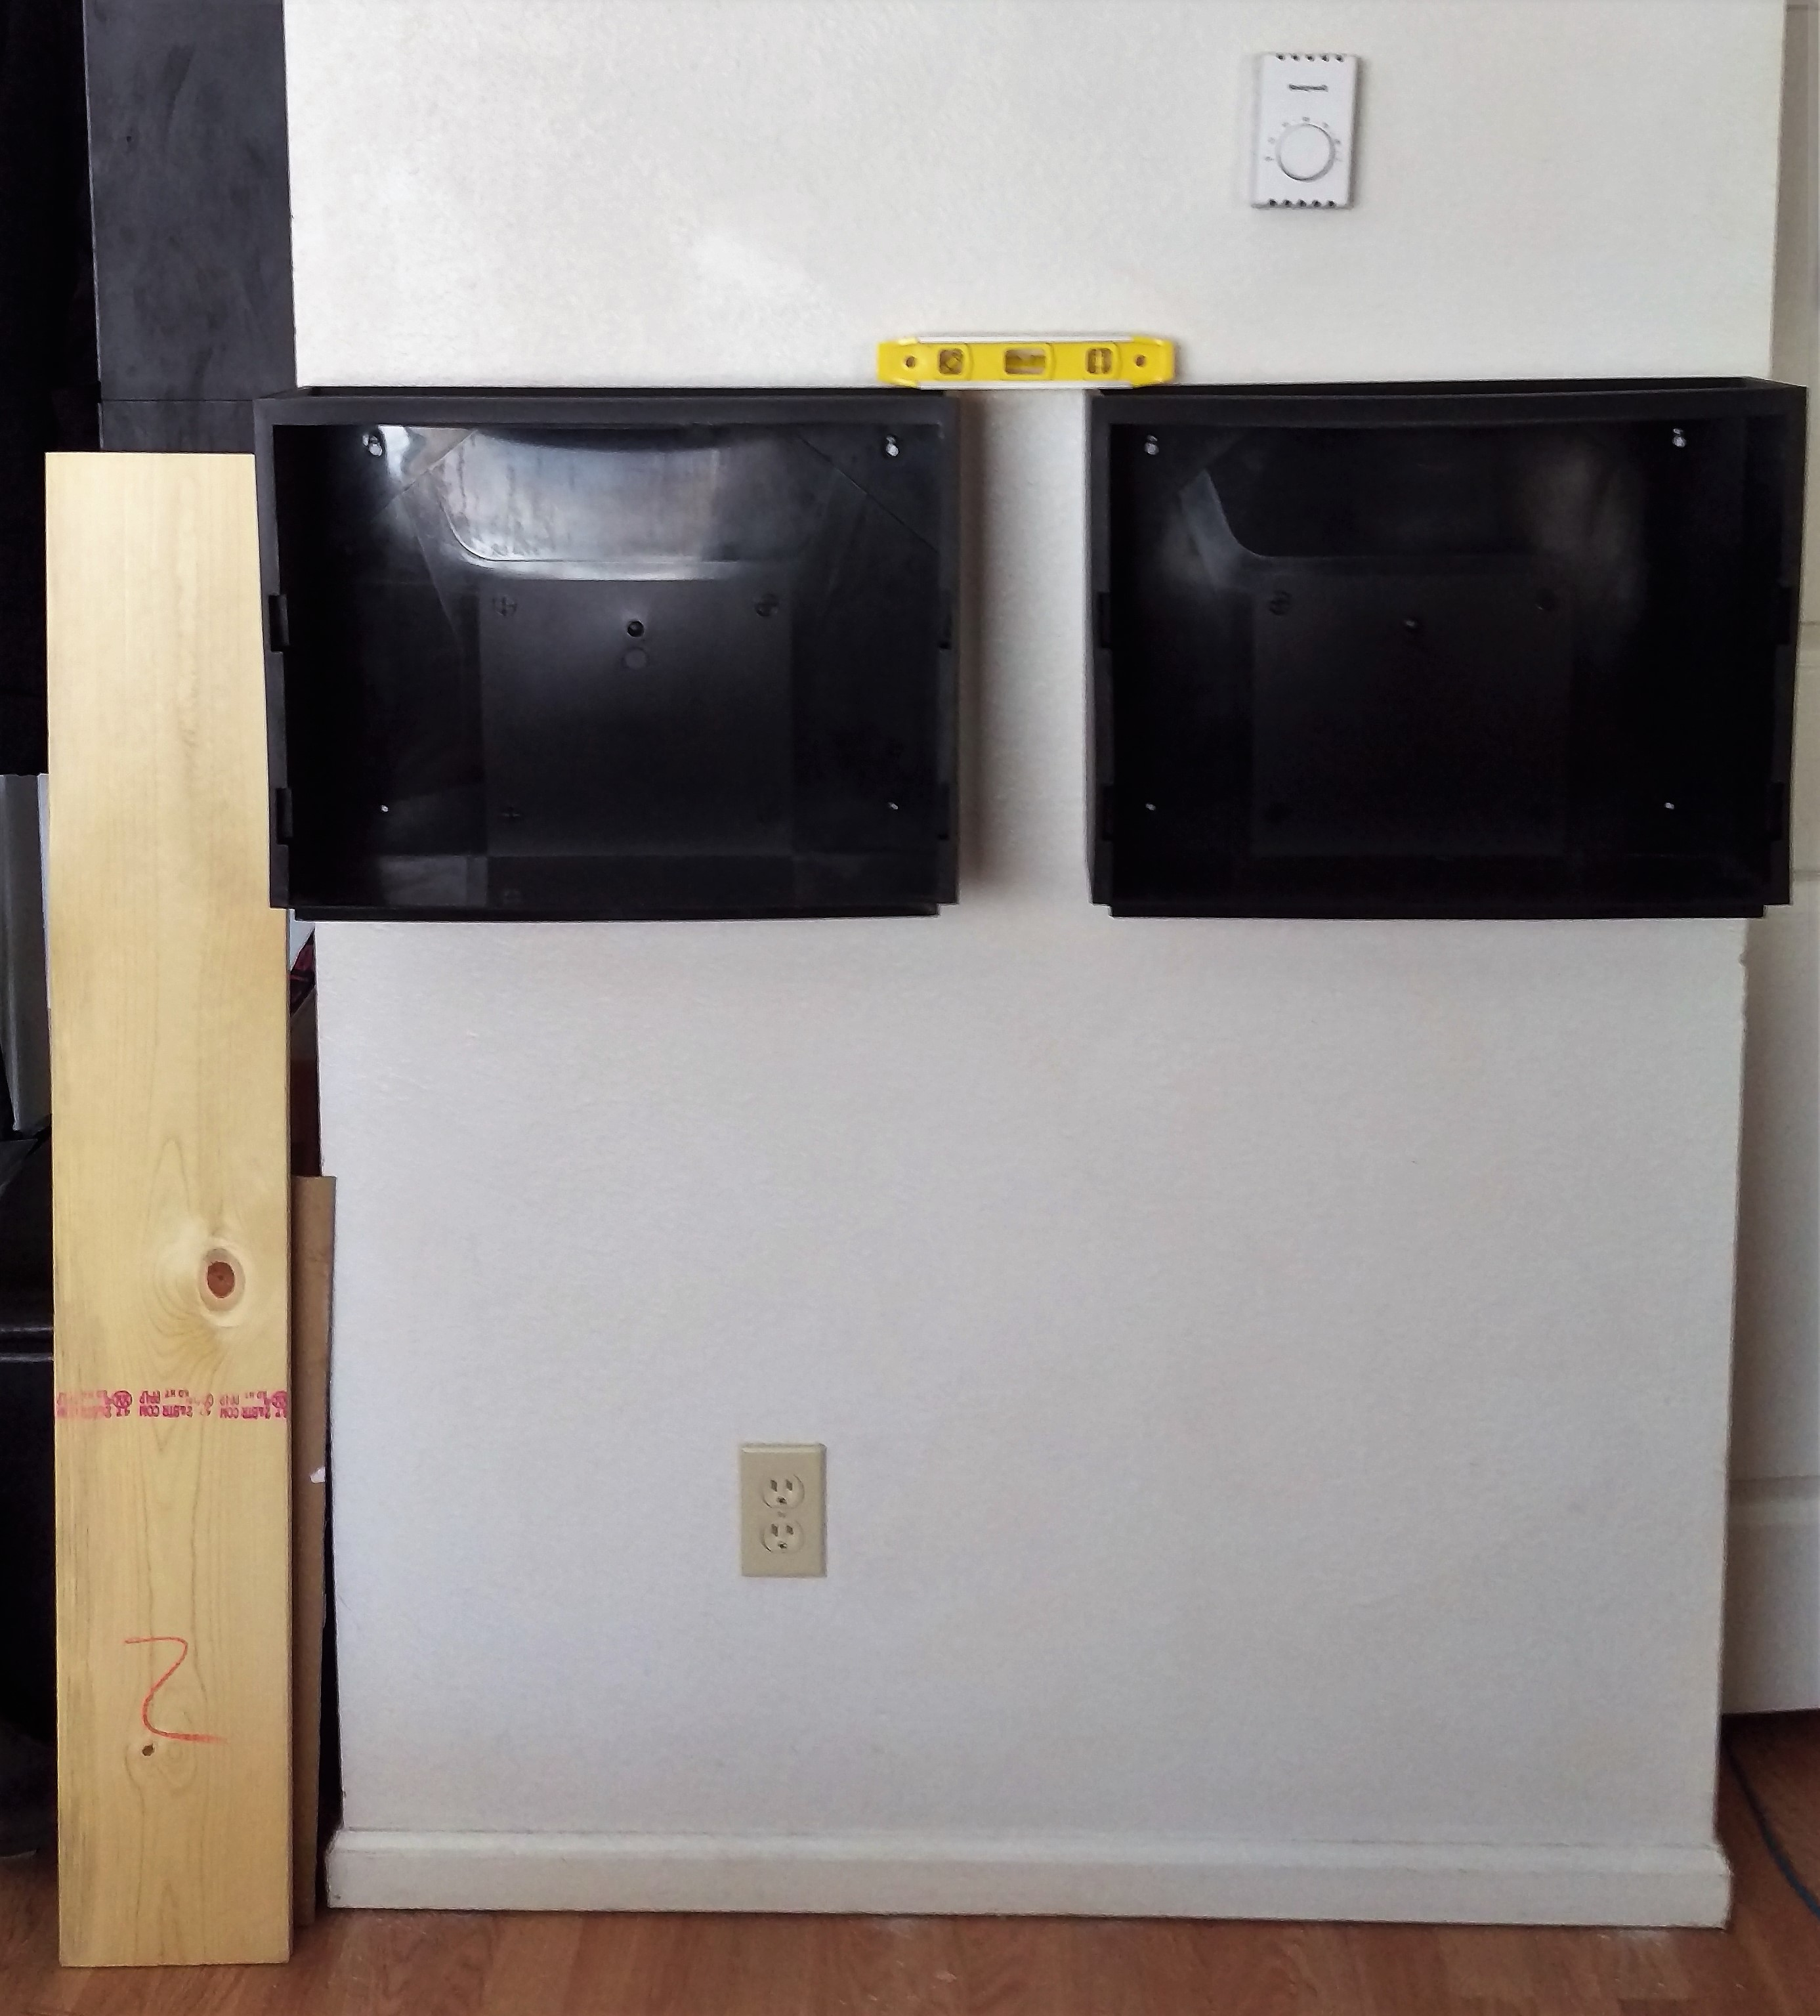 Picture of Mount Storage Bins to the Wall and Make Sure They Are Level.